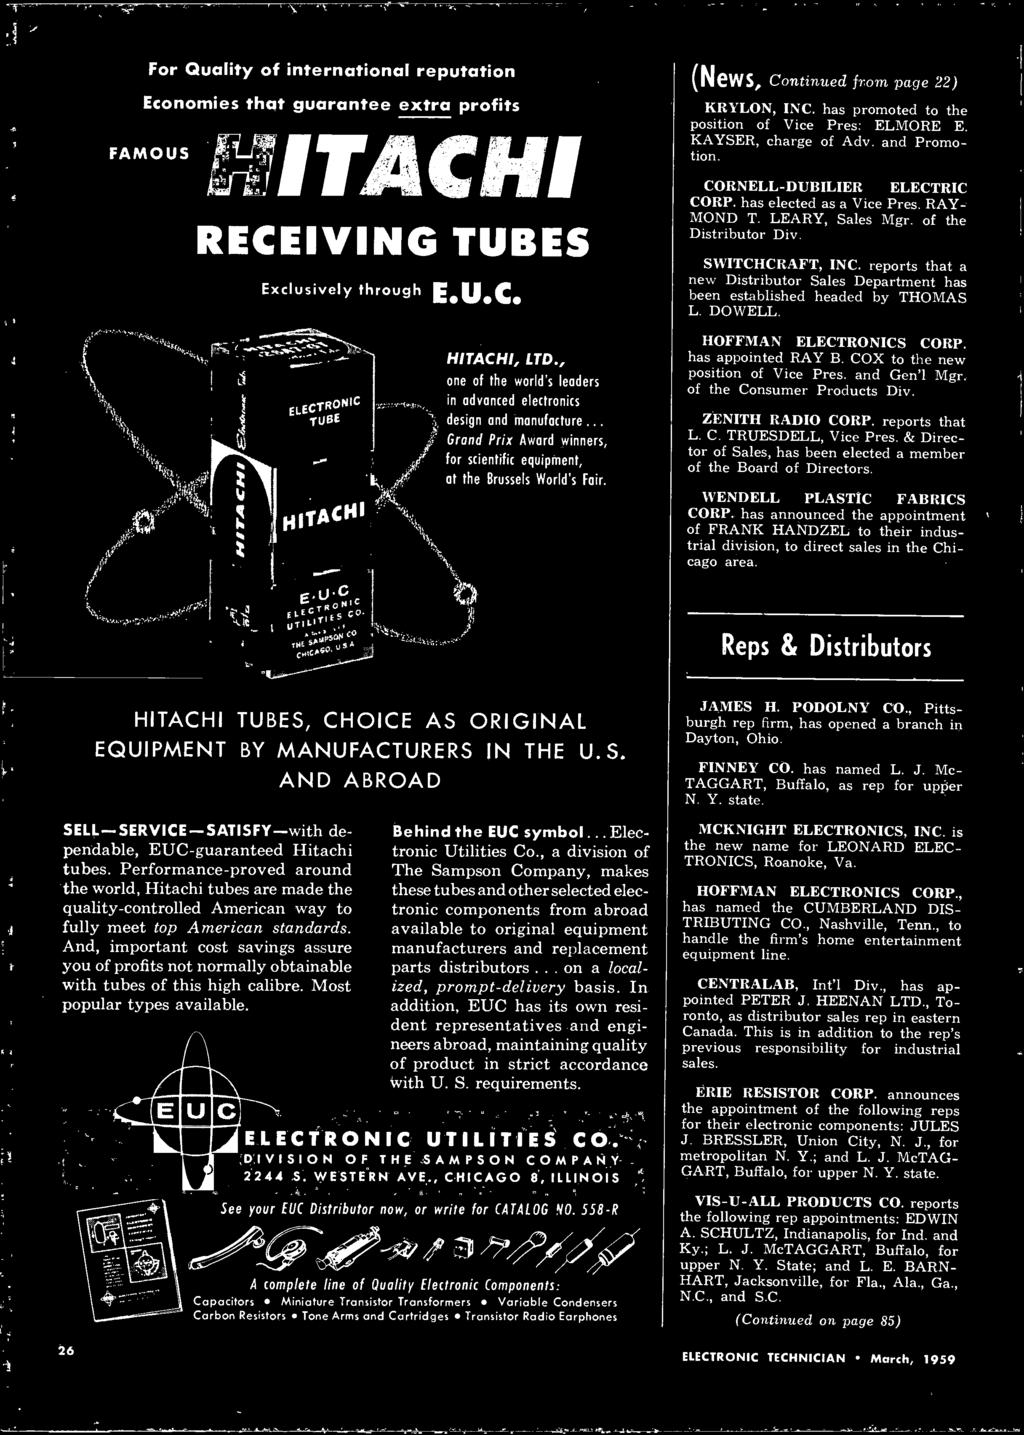 Electronic Technic T U Z M X Radar Speed Control Pdf Led Vu Meter Transistors Schematic In Addition Buzzer Symbol Circuit News Continued From Page 22 Krylon Inc Has Promoted To The